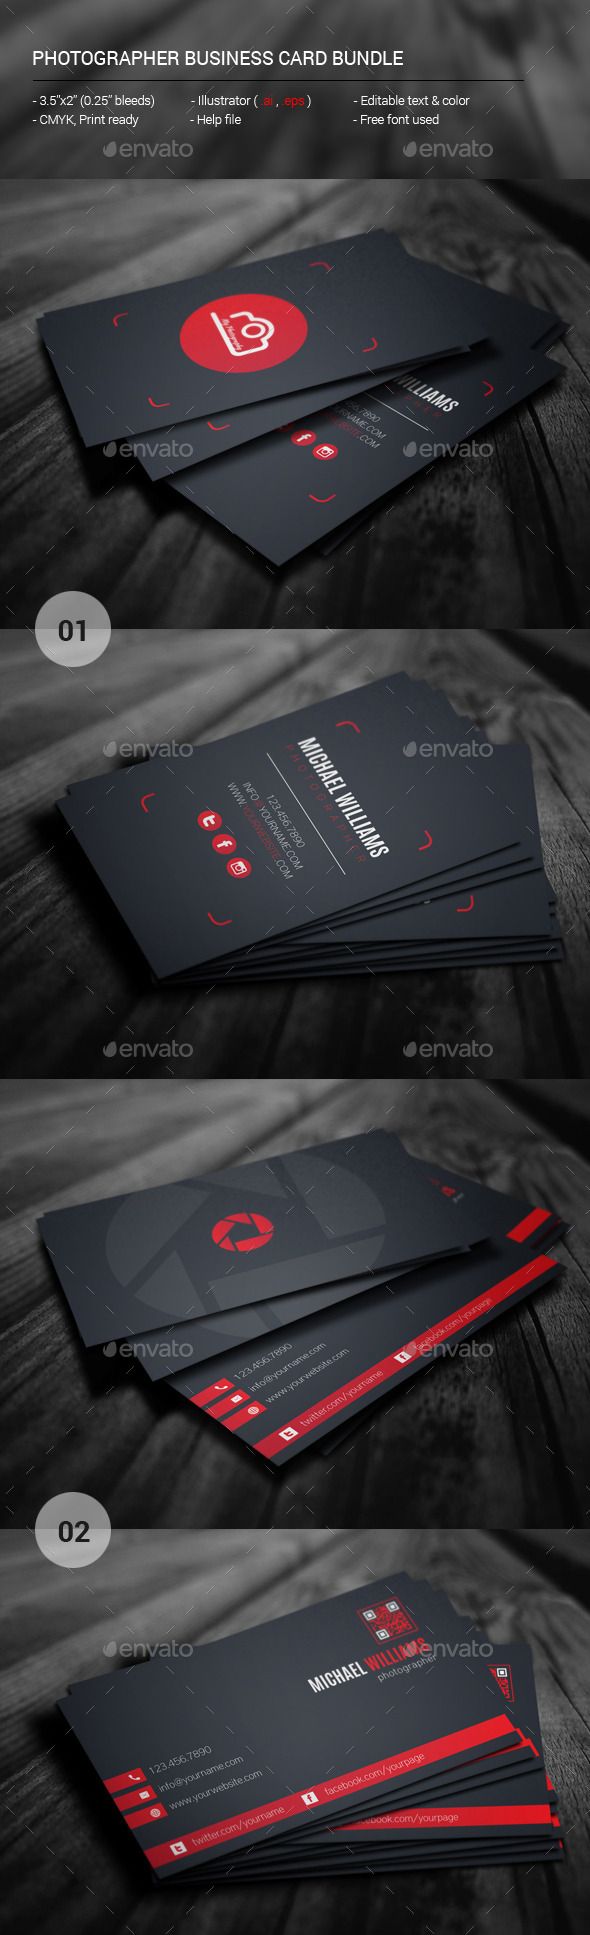 GraphicRiver Photographer Business Card Bundle 11395880